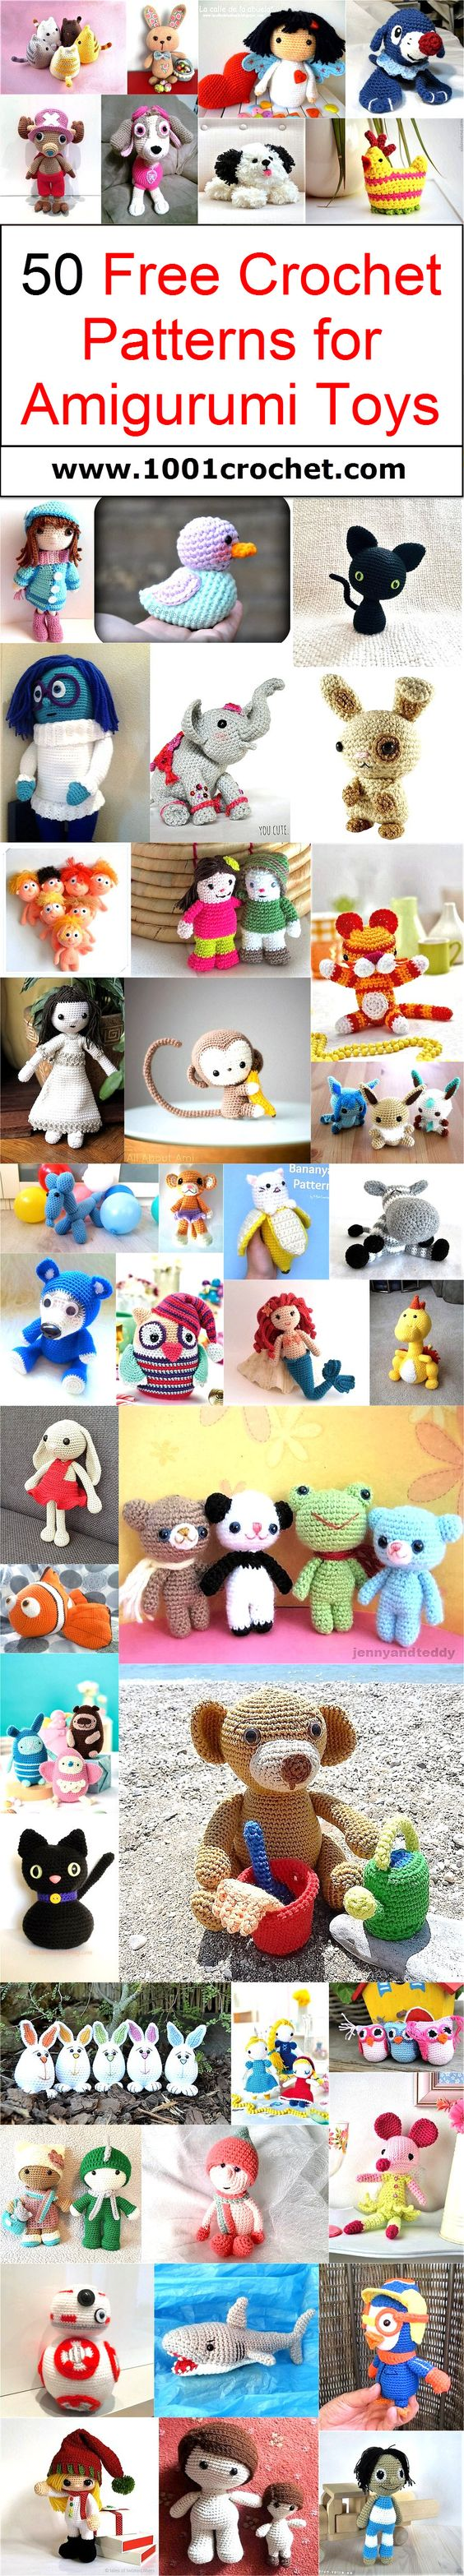 Today again we have come up with 50 free crochet patterns for amigurumi toys, and trust me this time again your kids are just going to love you for these awesome crocheted creations.: